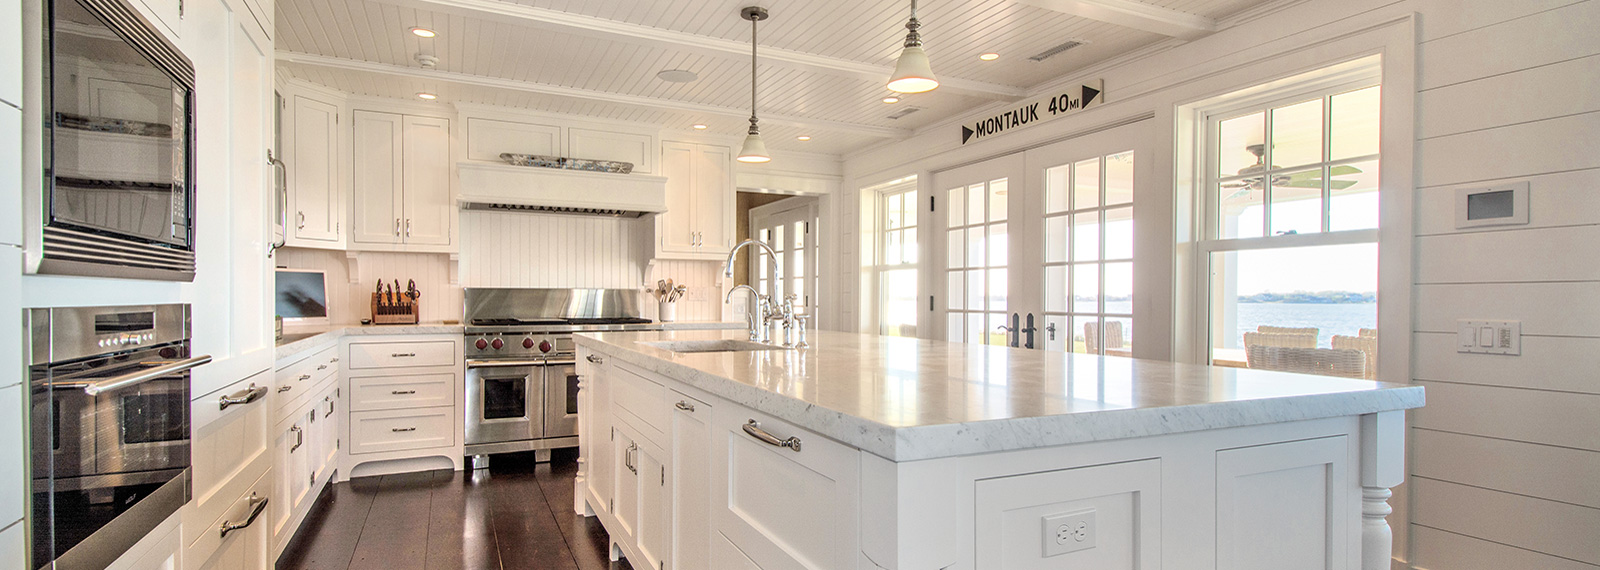 Hamptons Kitchens Luxury Kitchen Designers In The Hamptons Kitchen Appliances Tips